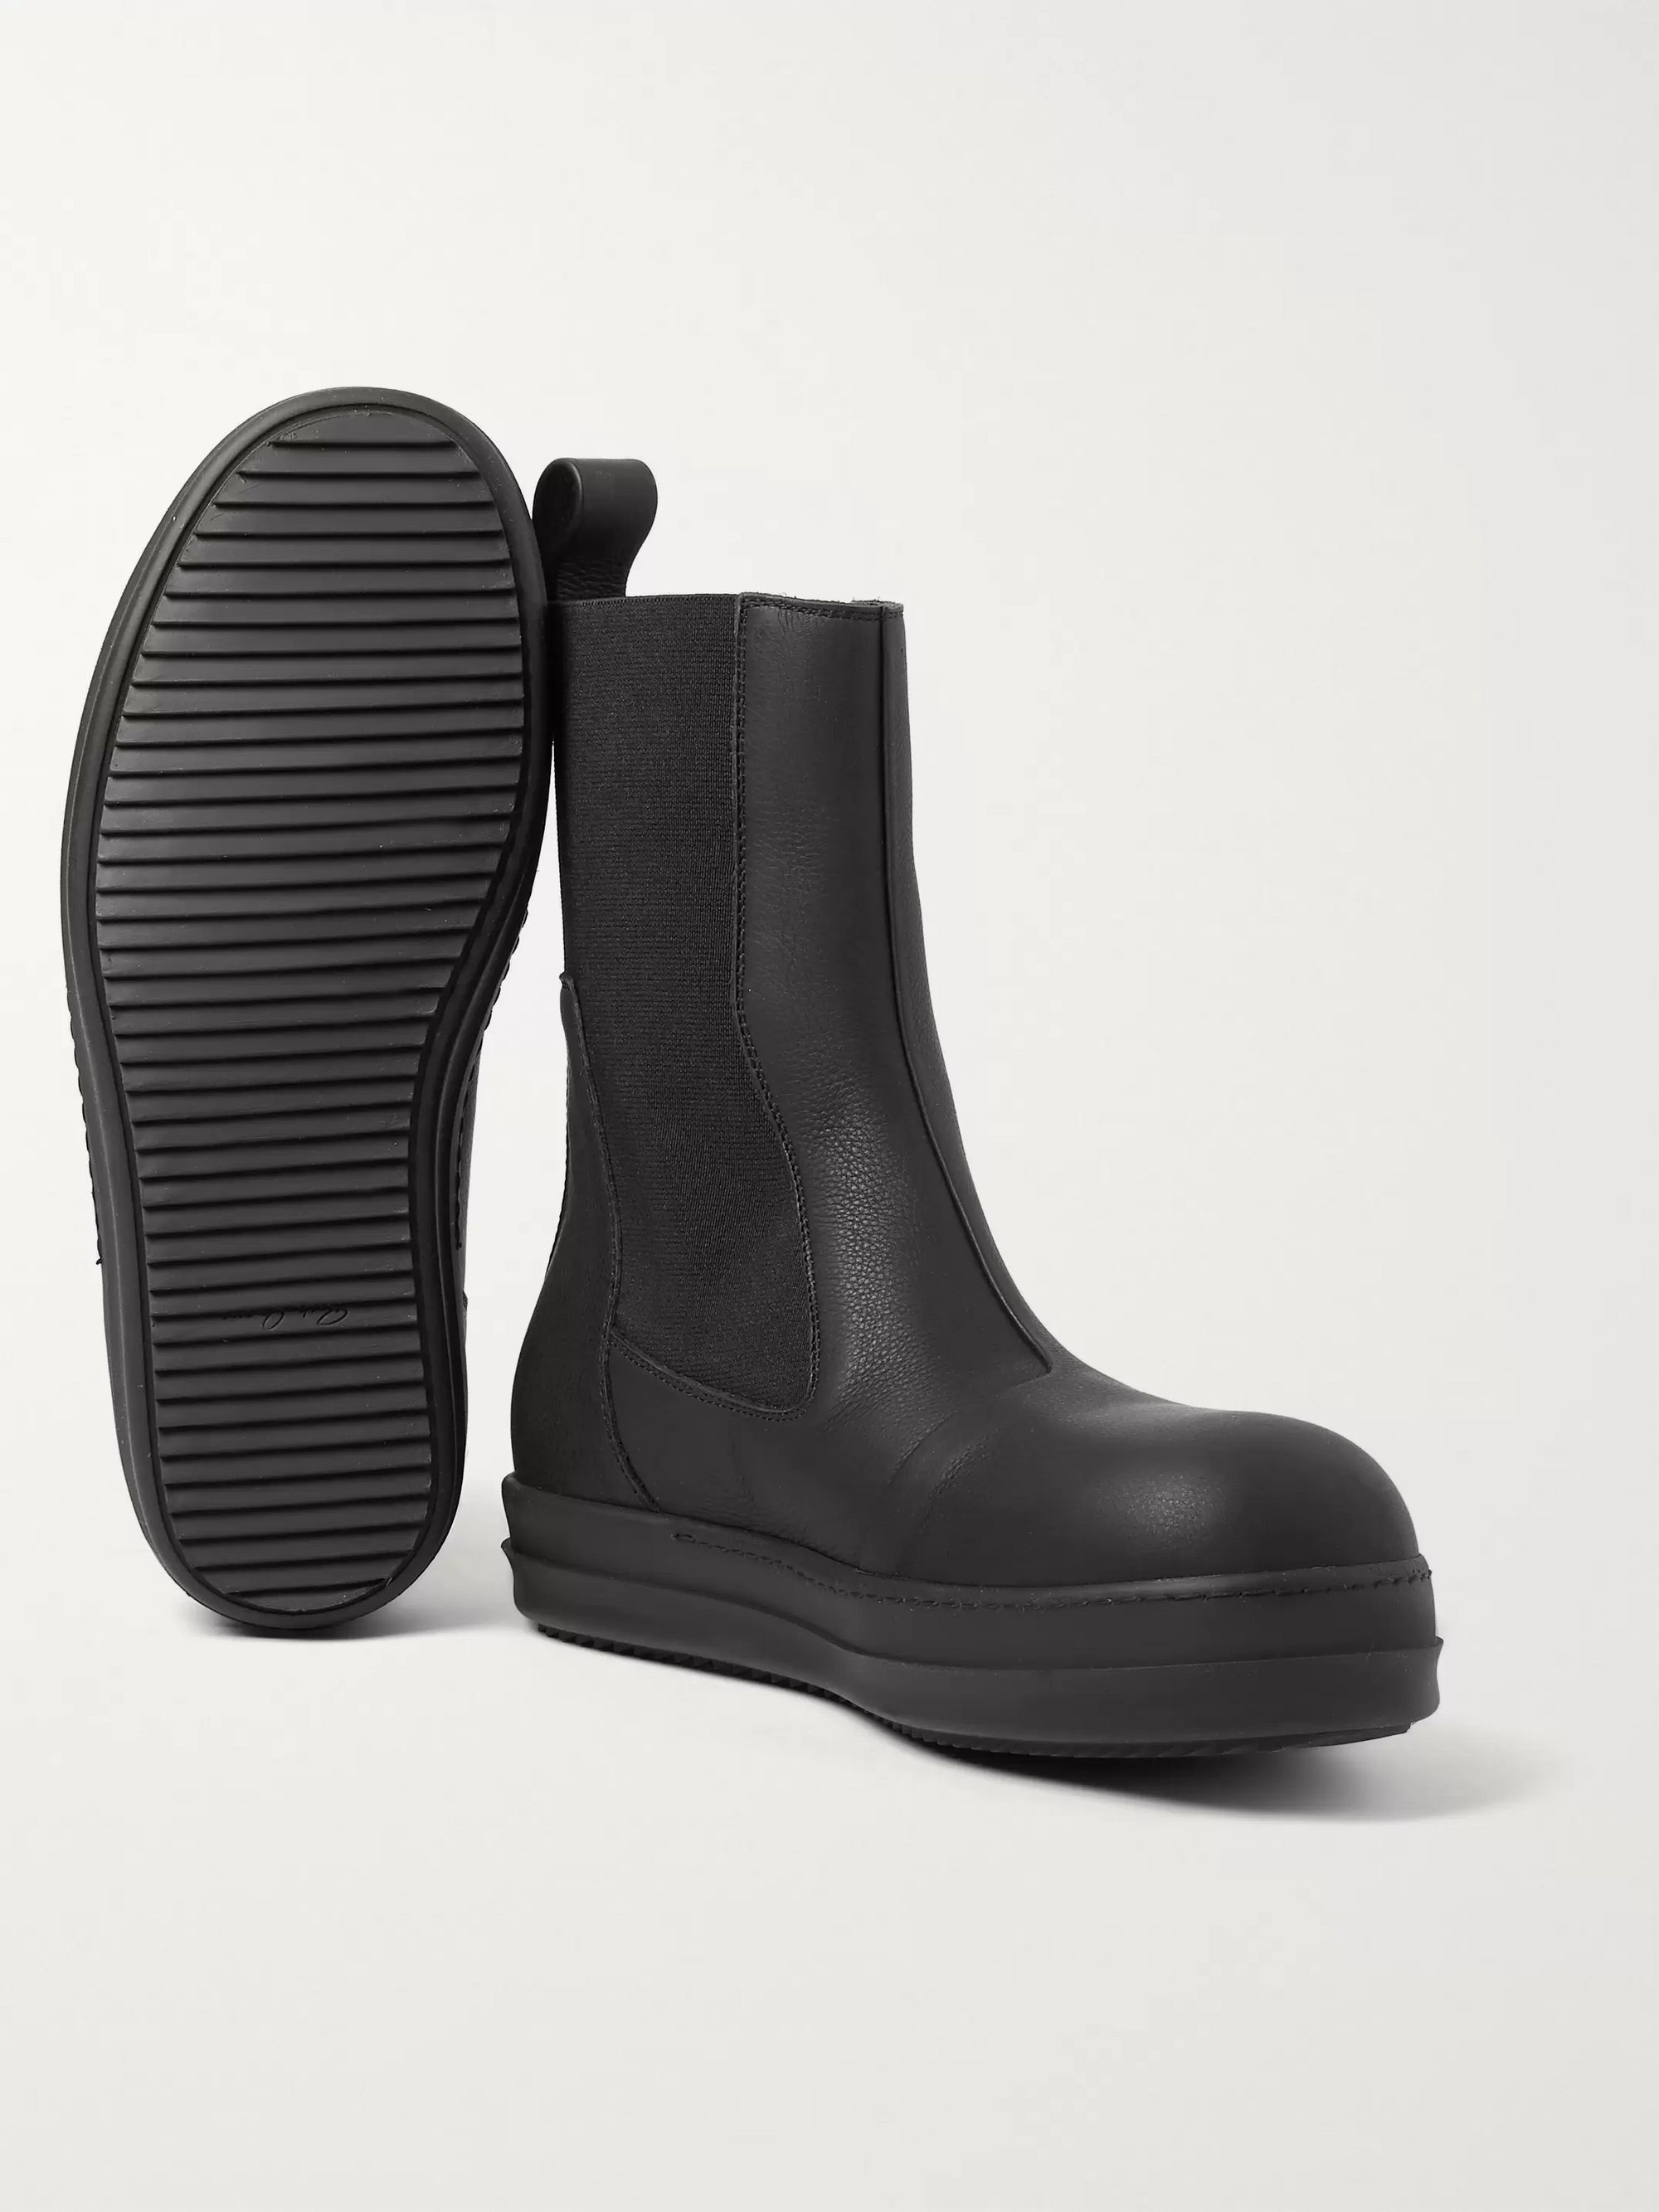 Rick Owens Bozo Leather Chelsea Boots